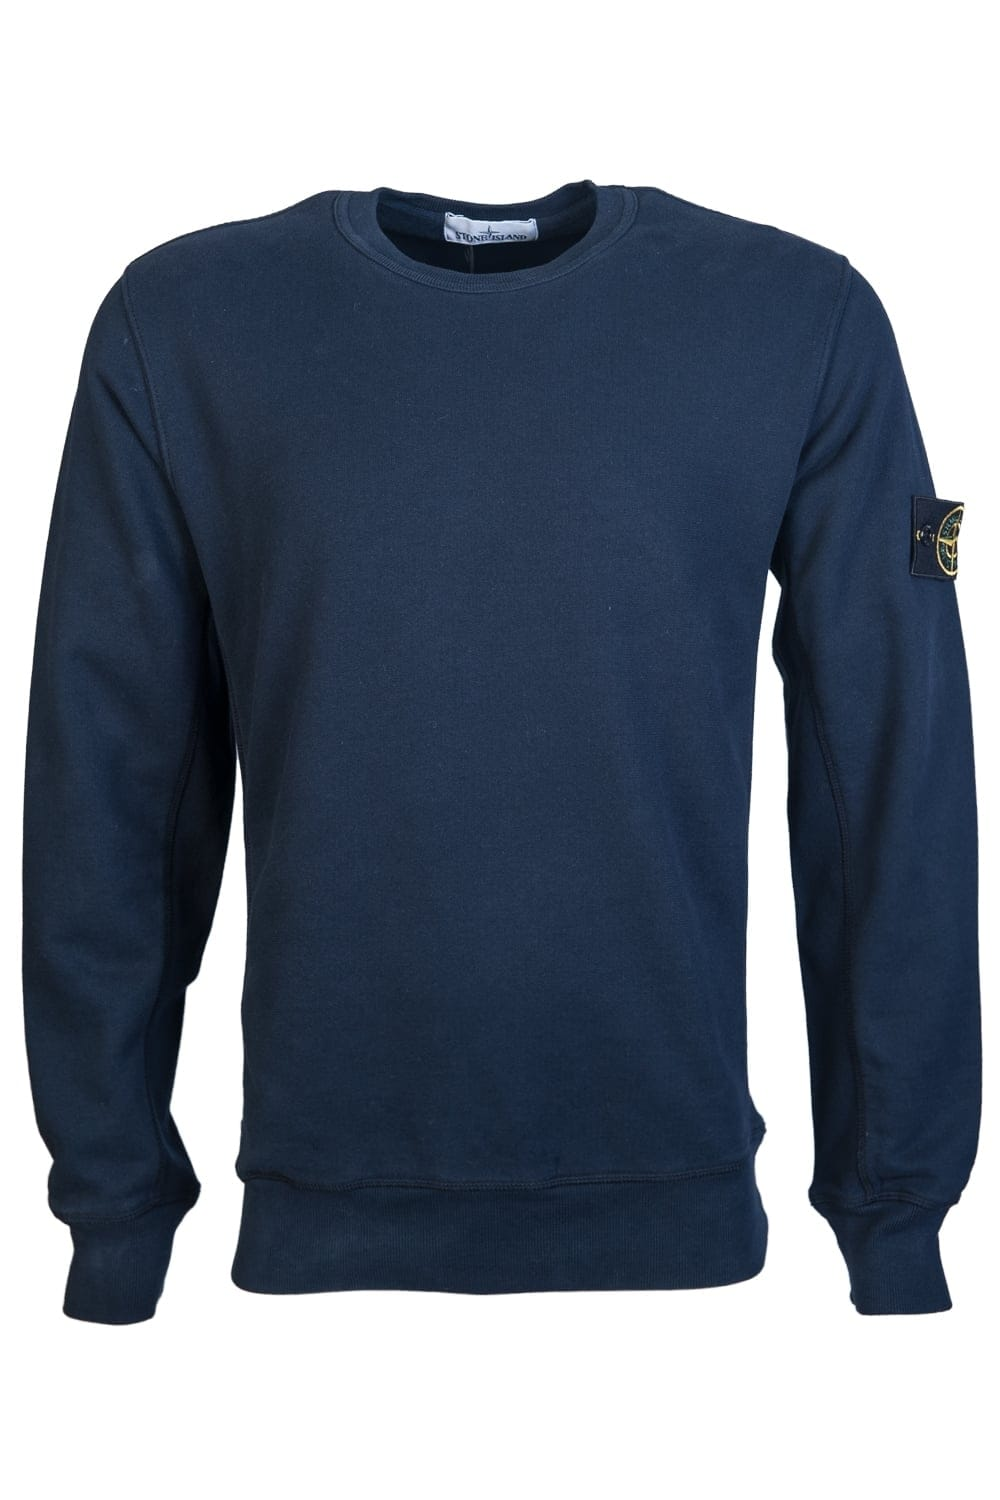 stone island sweatshirt jumper 651565320 clothing from sage clothing uk. Black Bedroom Furniture Sets. Home Design Ideas